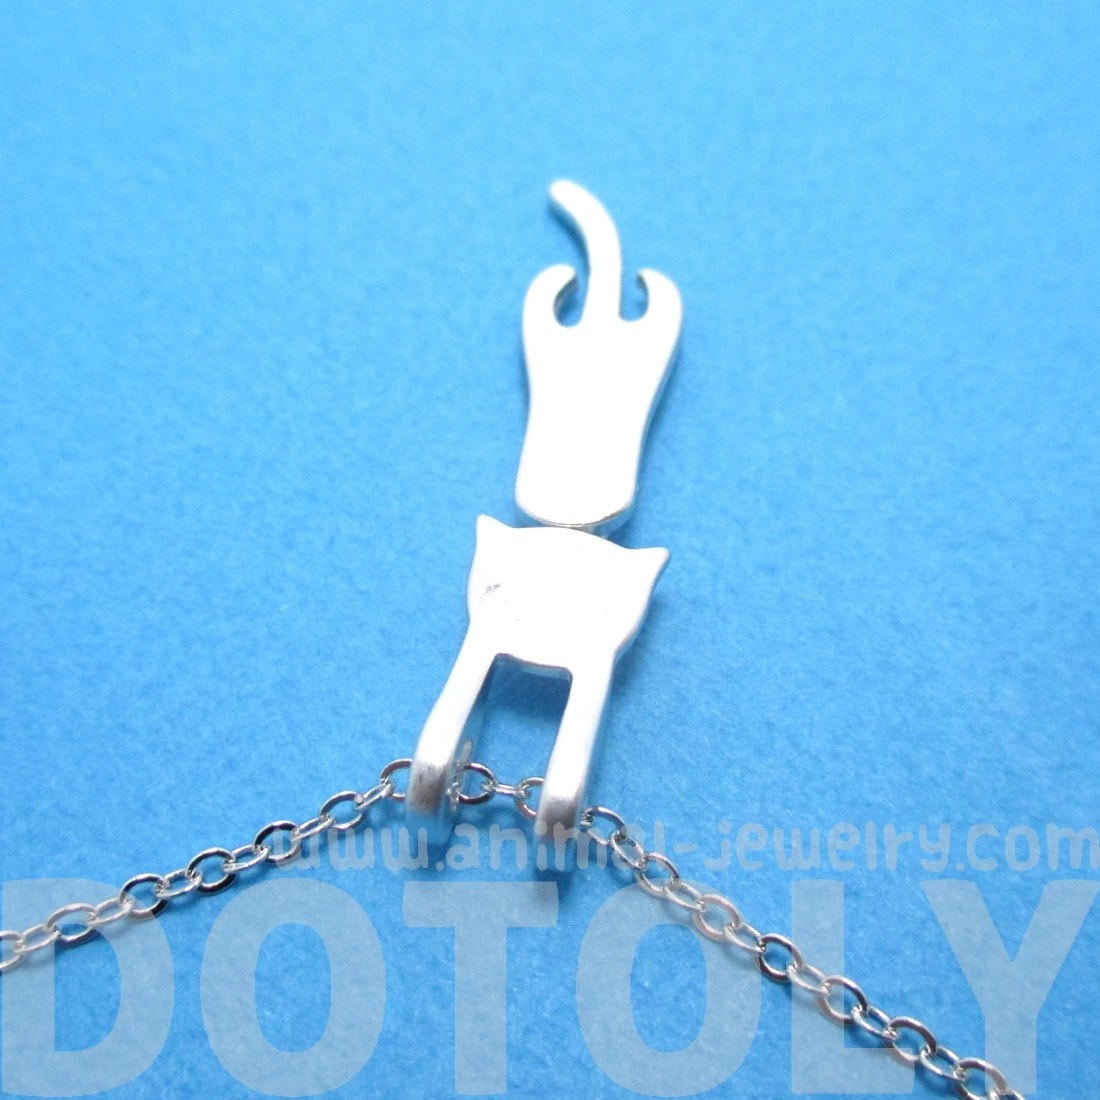 Kitty Cat Dangling Off Chain Pendant Necklace in Silver